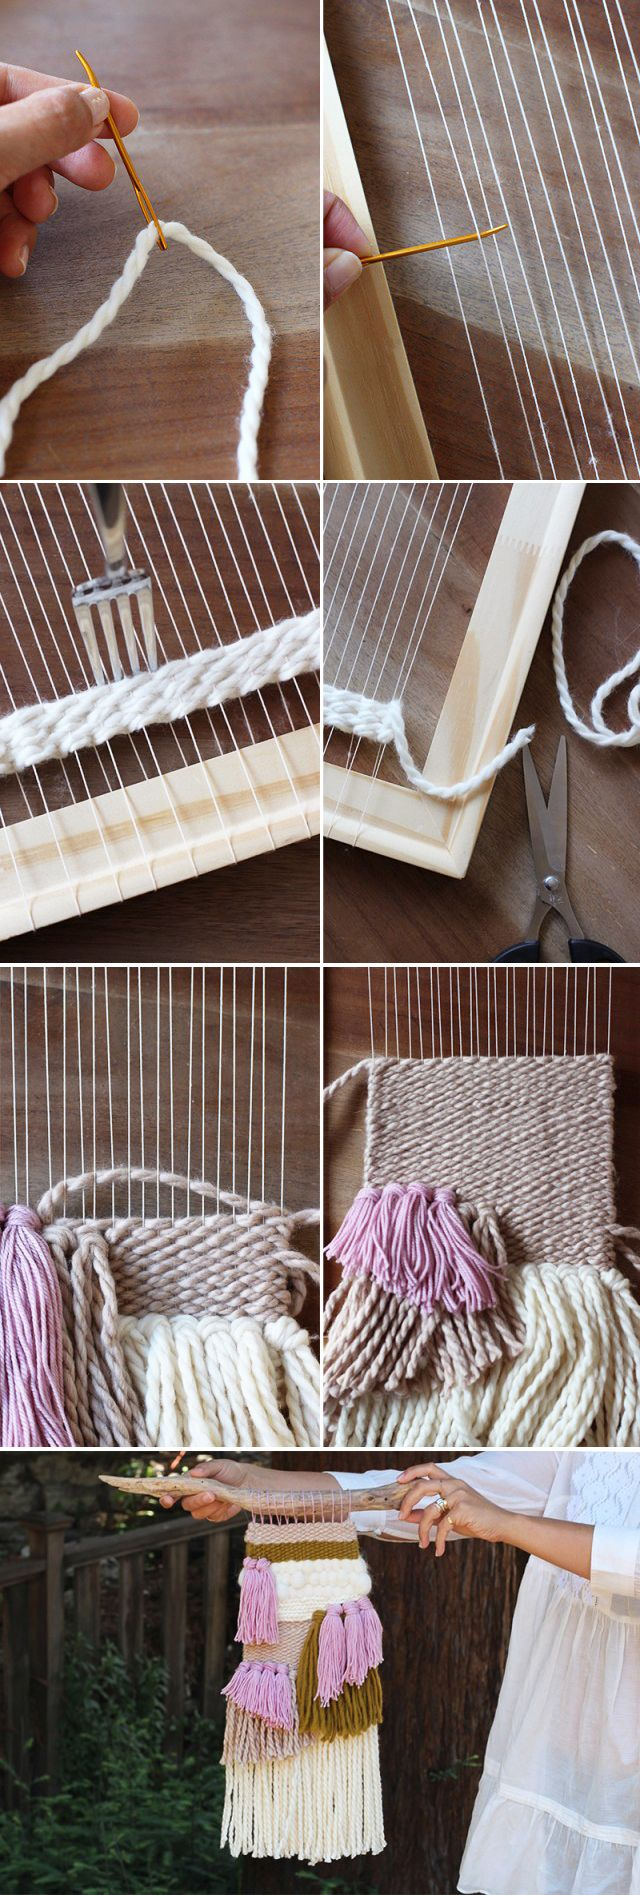 DIY wall weaving